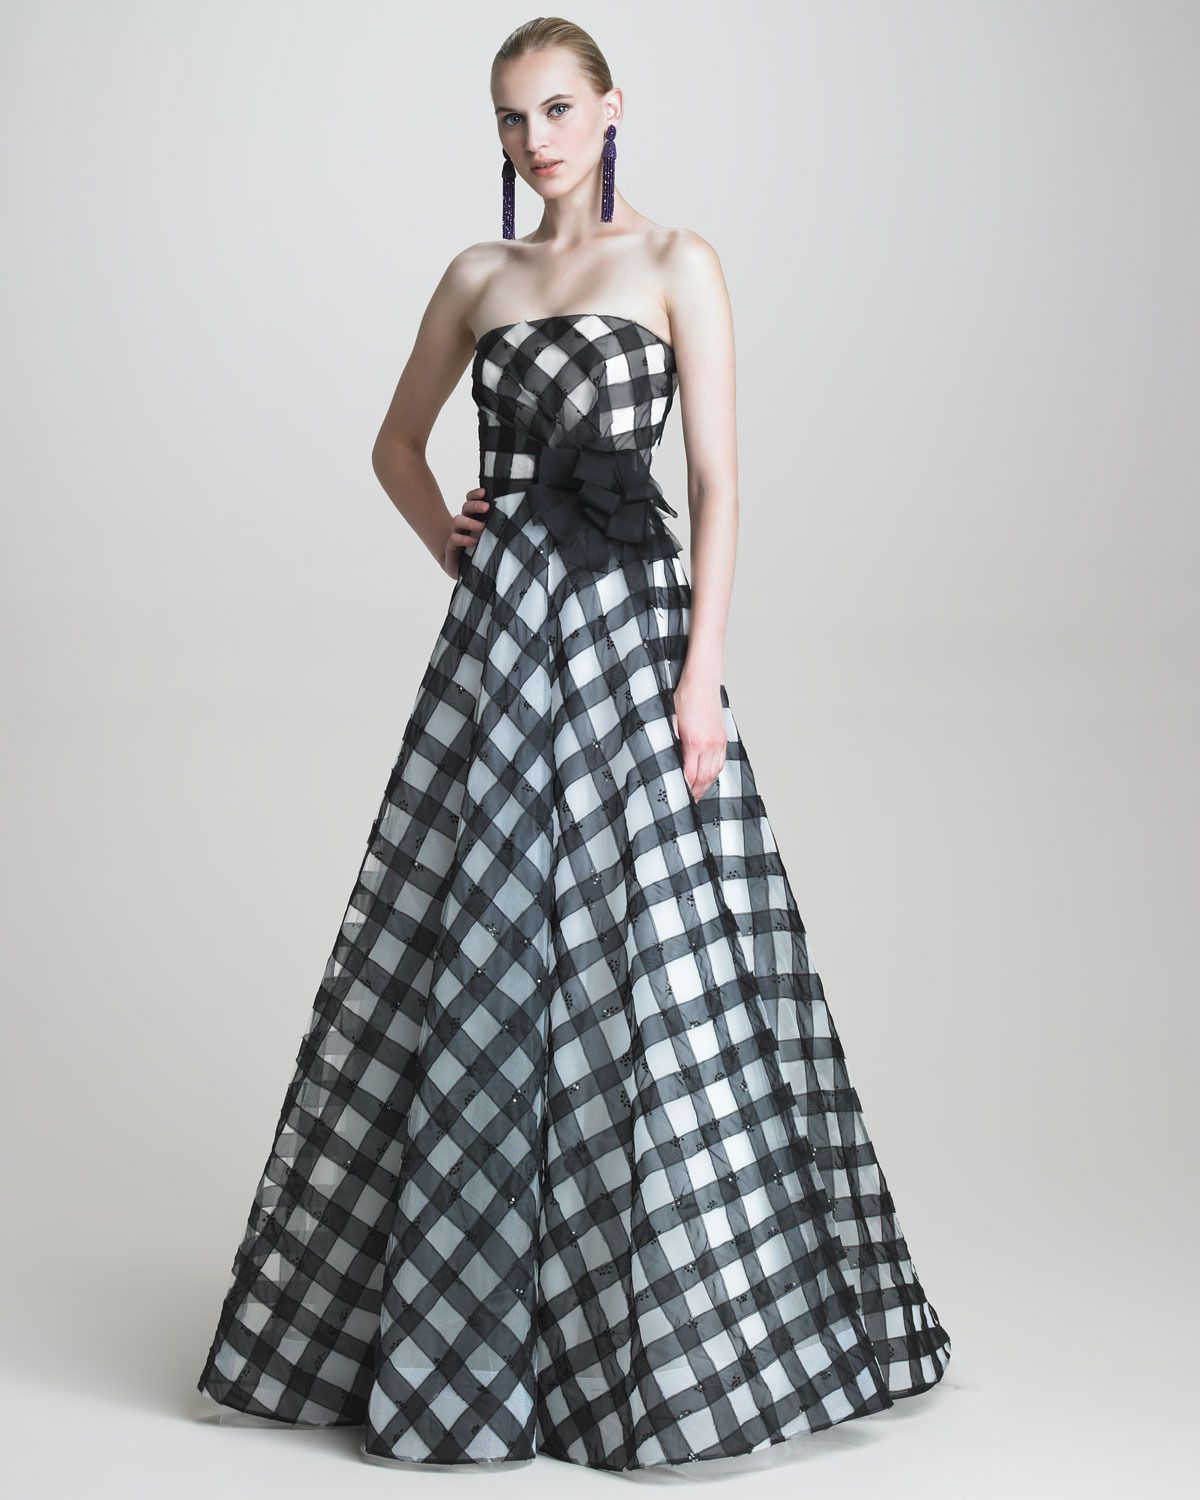 Strapless gingham gown outfitaccessories pinterest gingham strapless gingham gown black evening dressesneiman marcusoscarsbridesmaid ombrellifo Choice Image